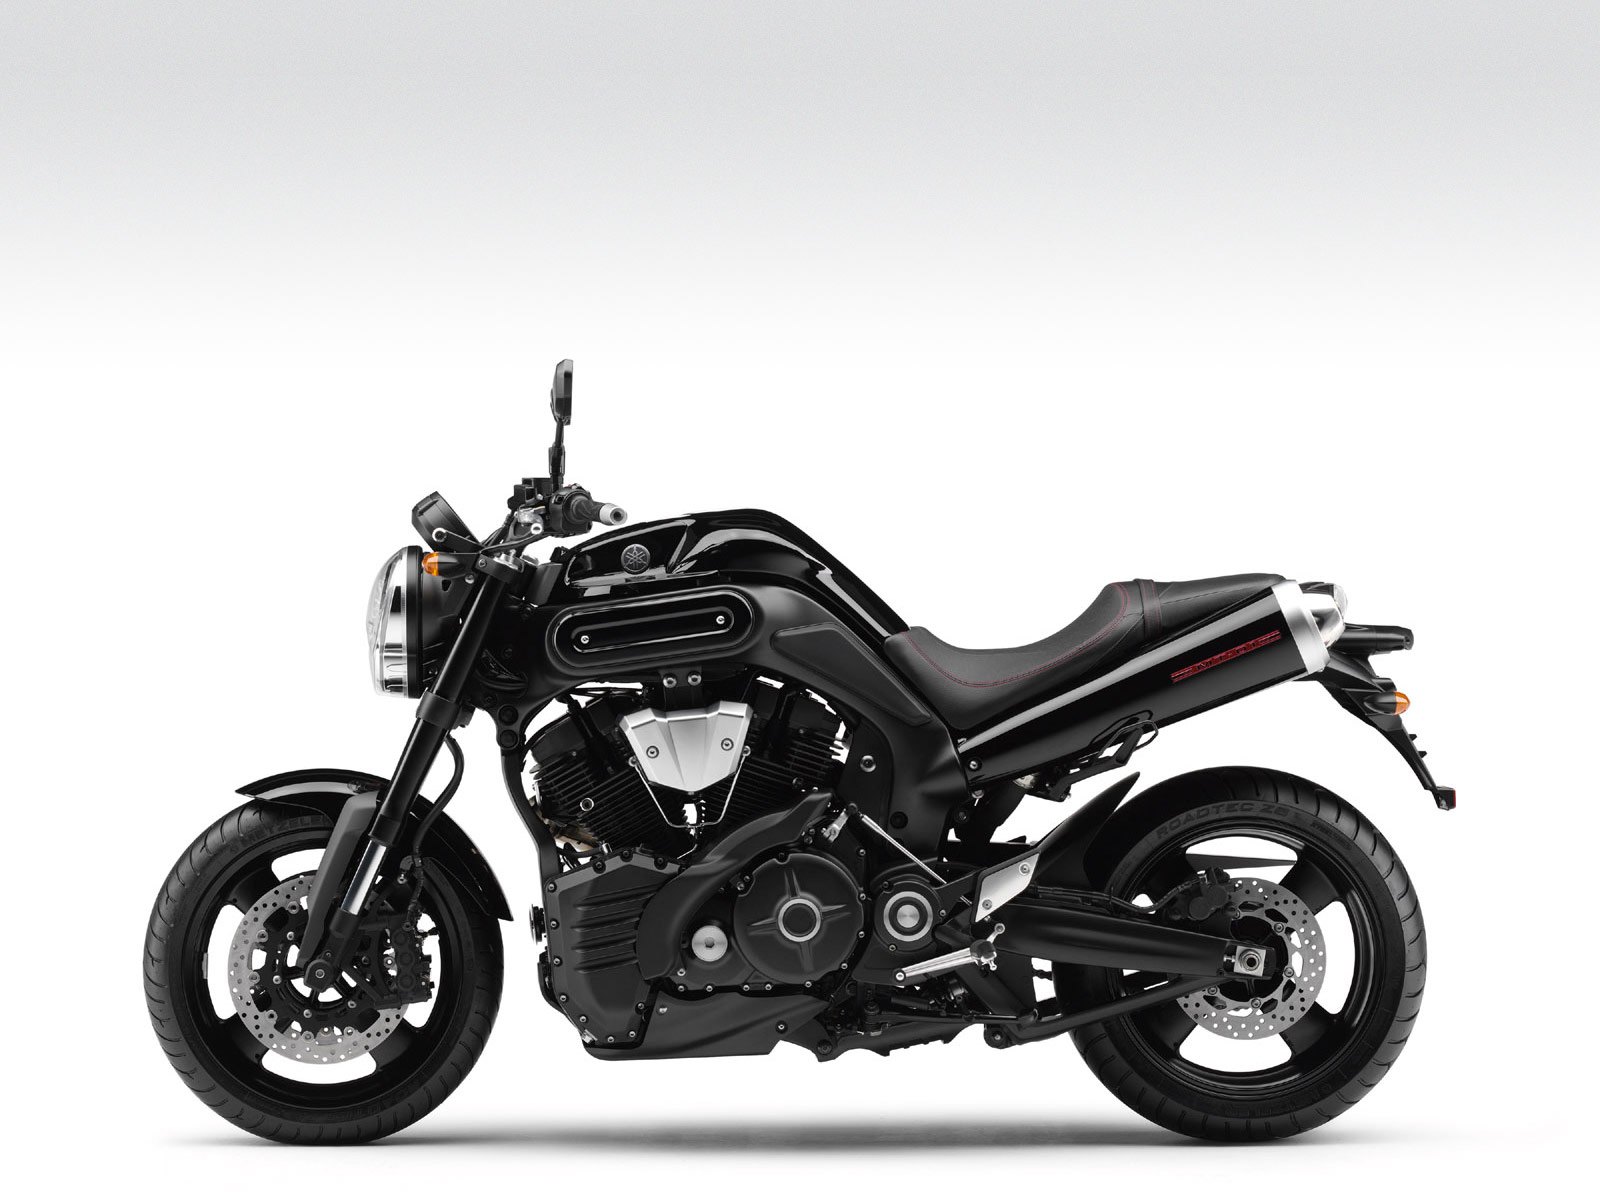 2009 YAMAHA MT01 pictures  review and specifications